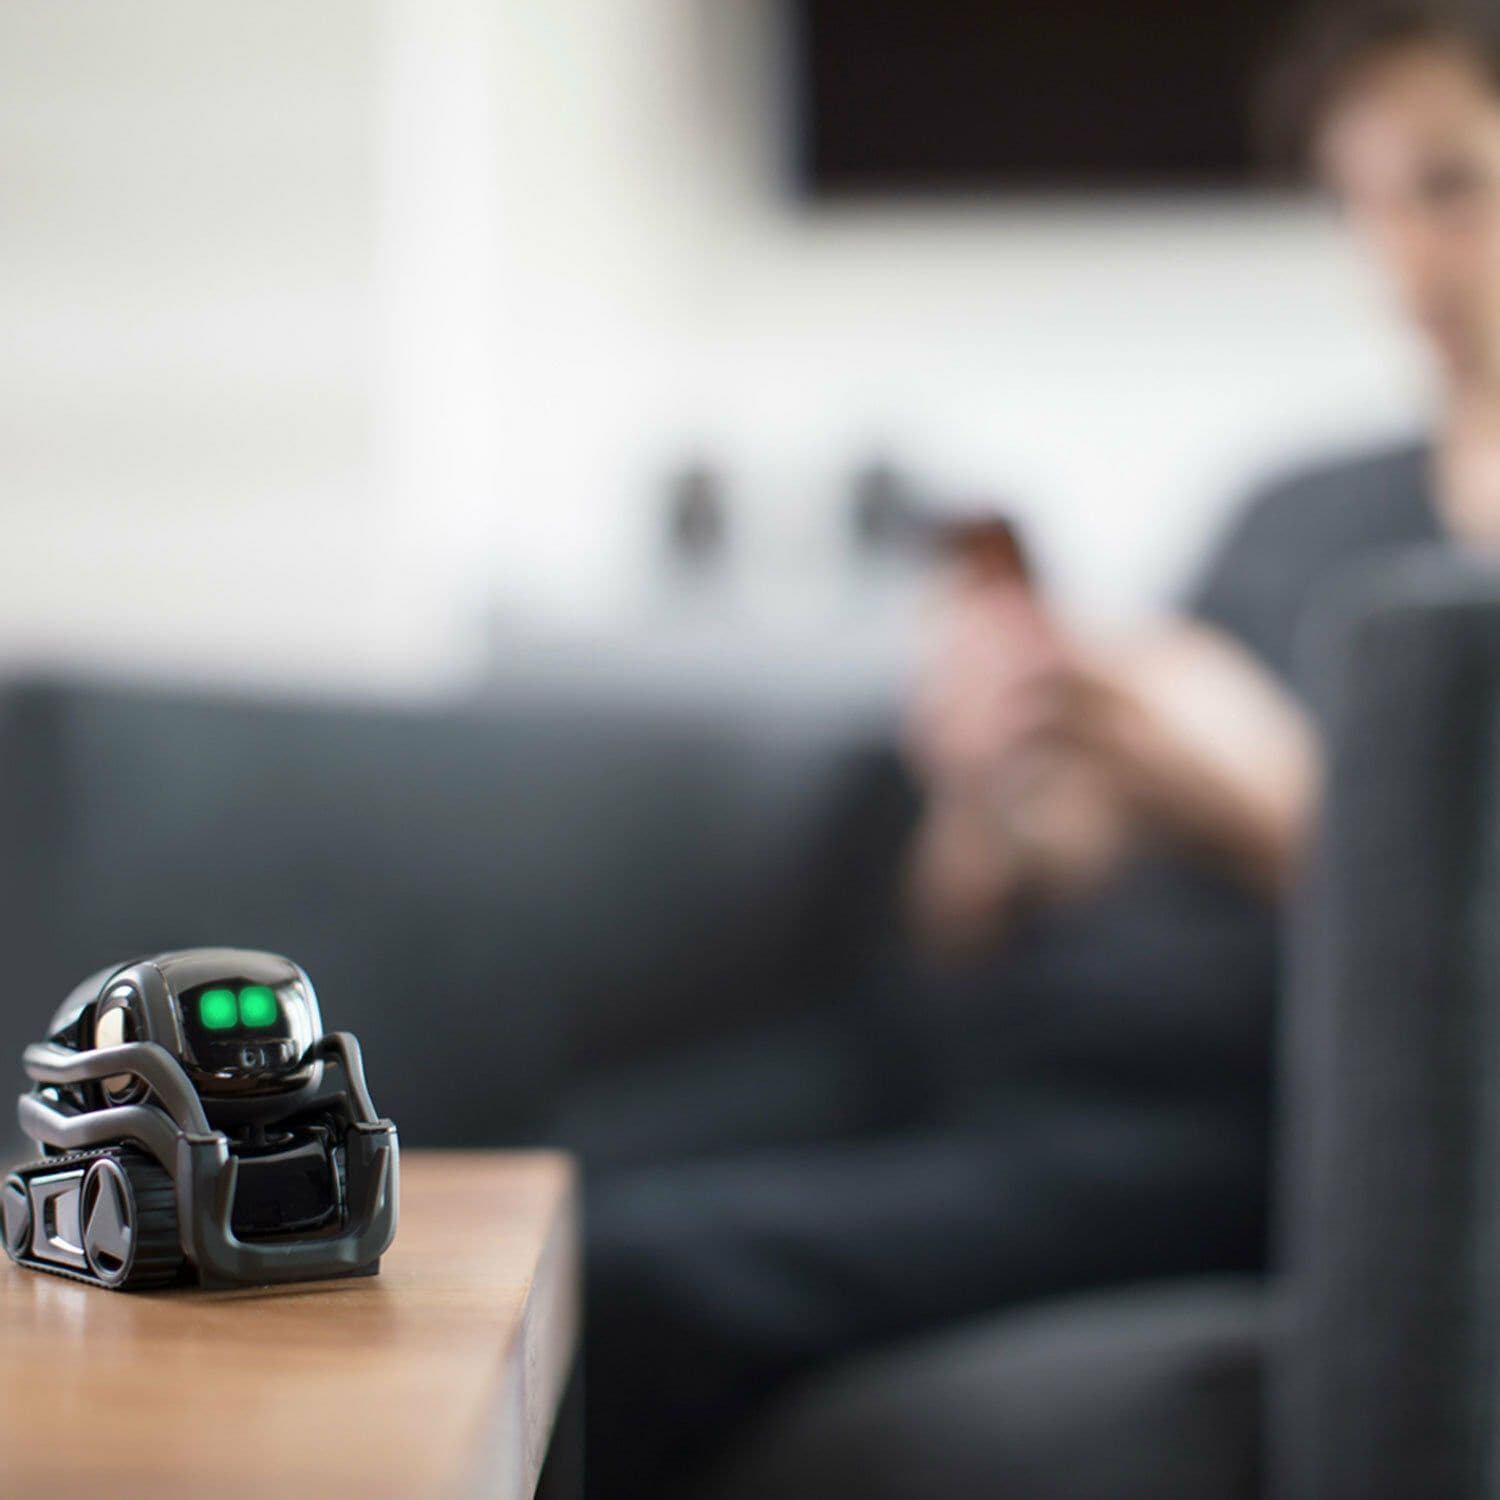 Anki Vector Robot with Amazon Alexa Built In - English